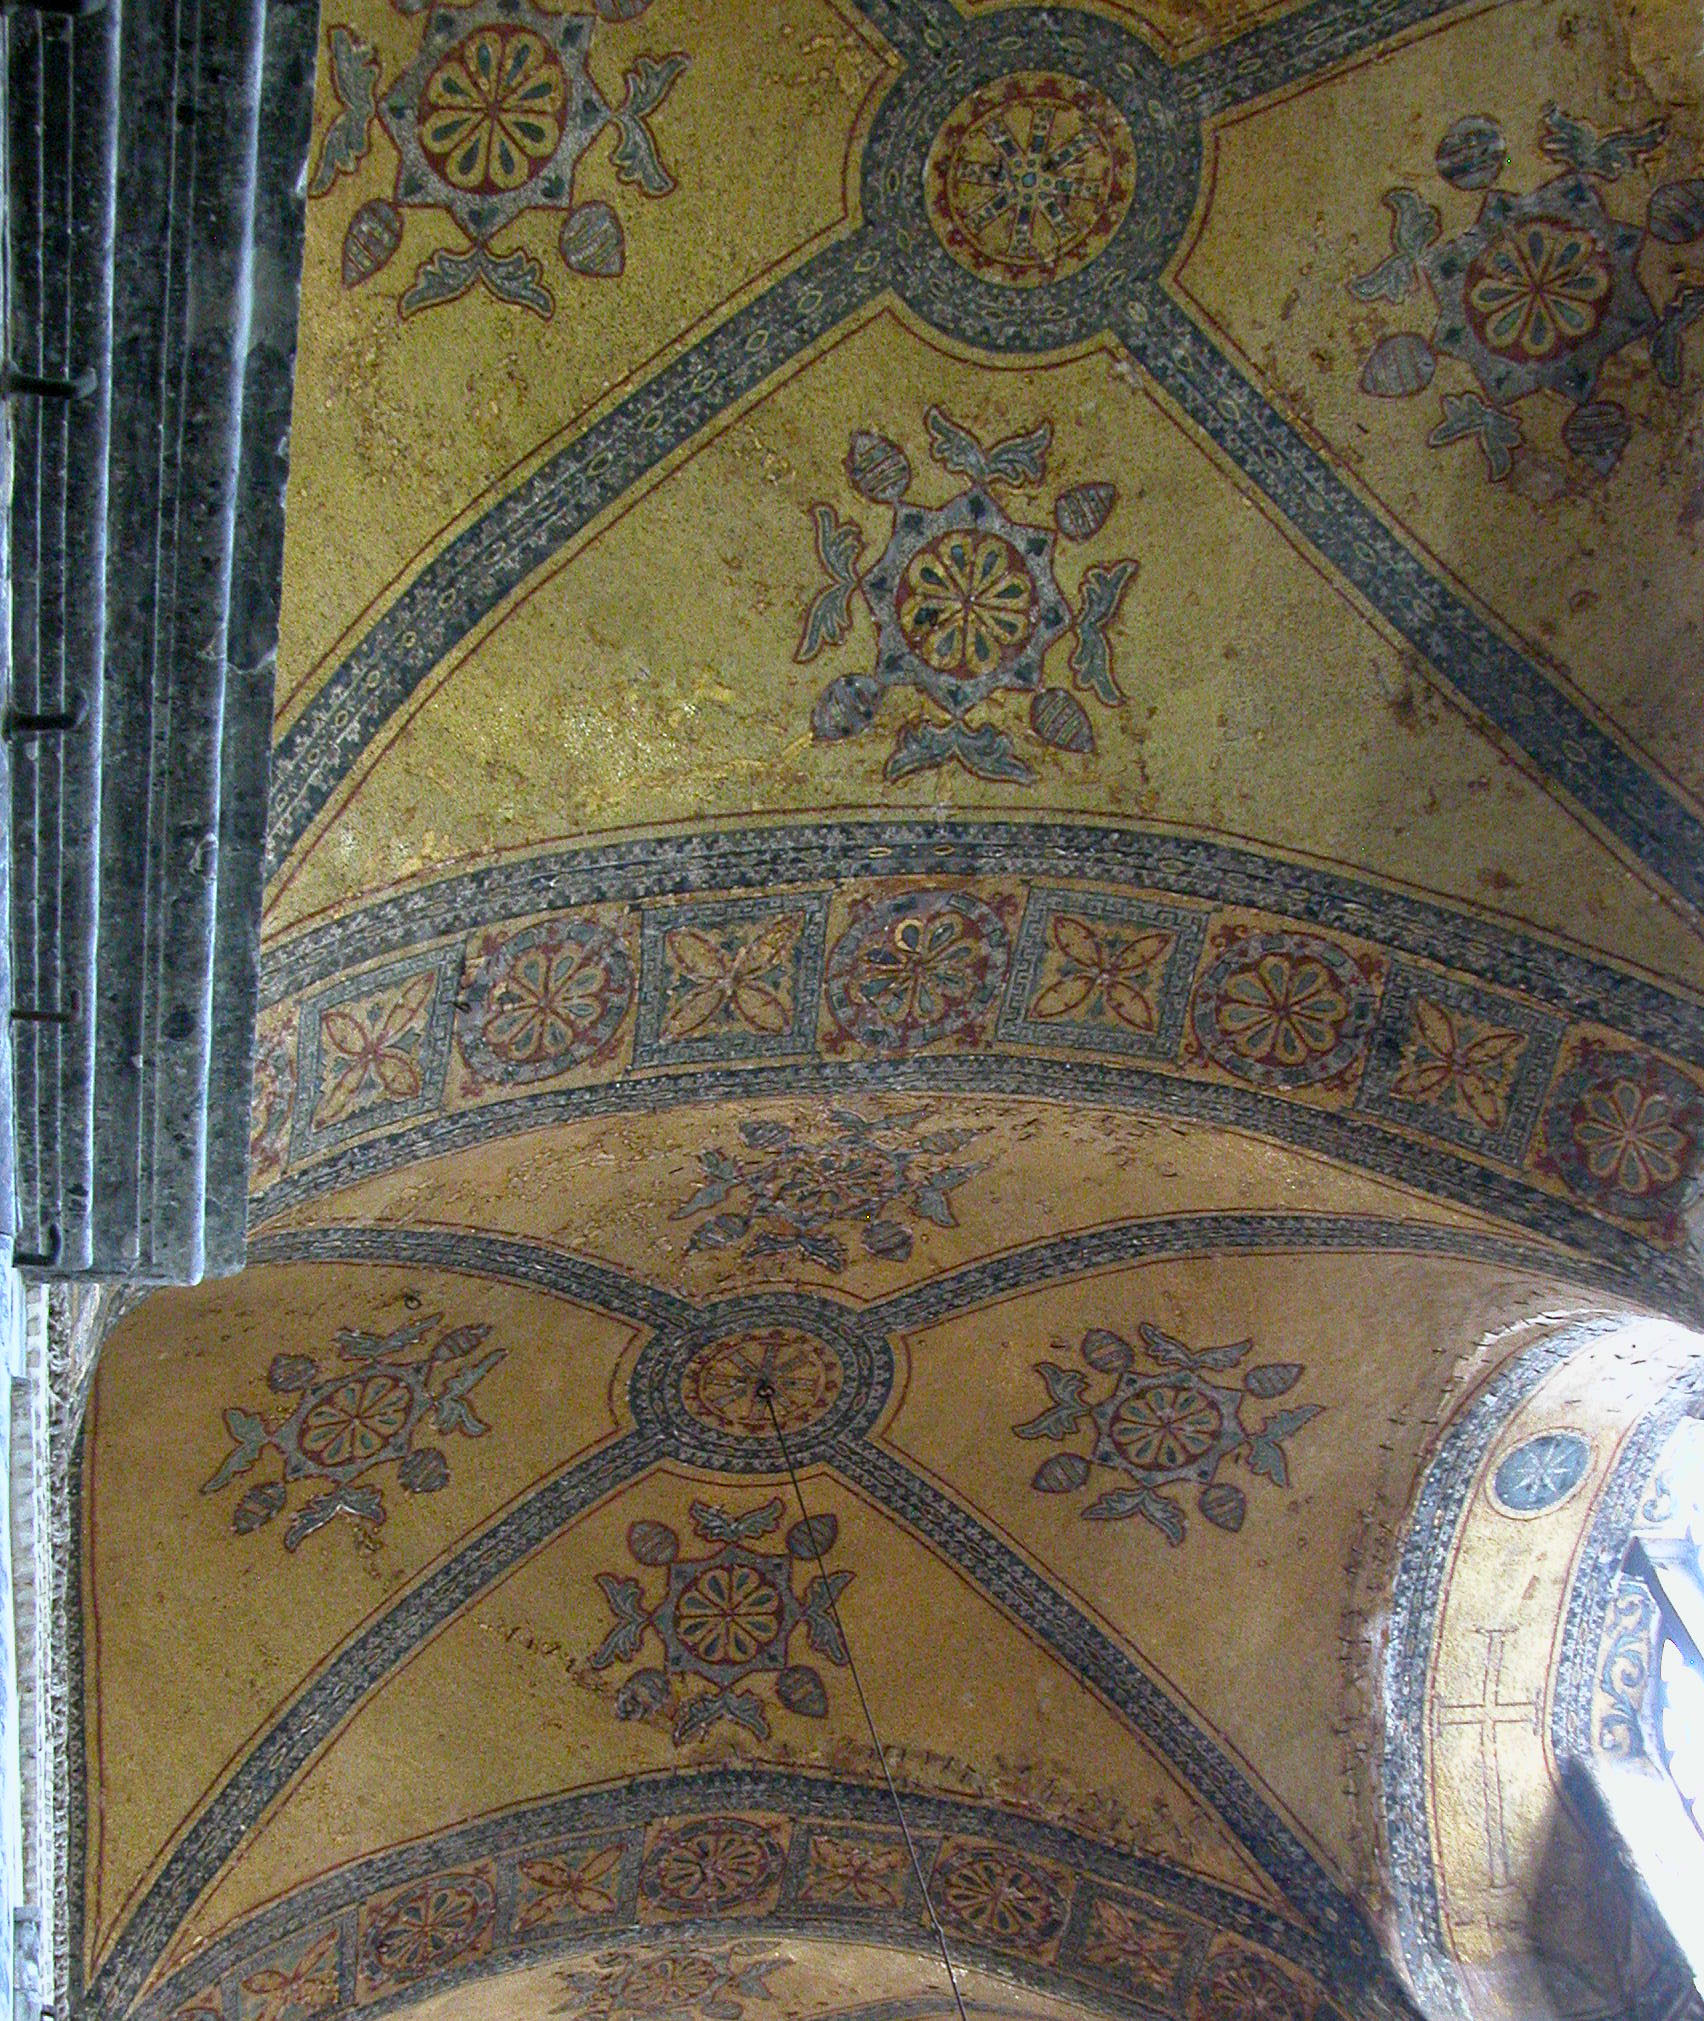 Vaults of the Inner Narthex of Hagia Sophia